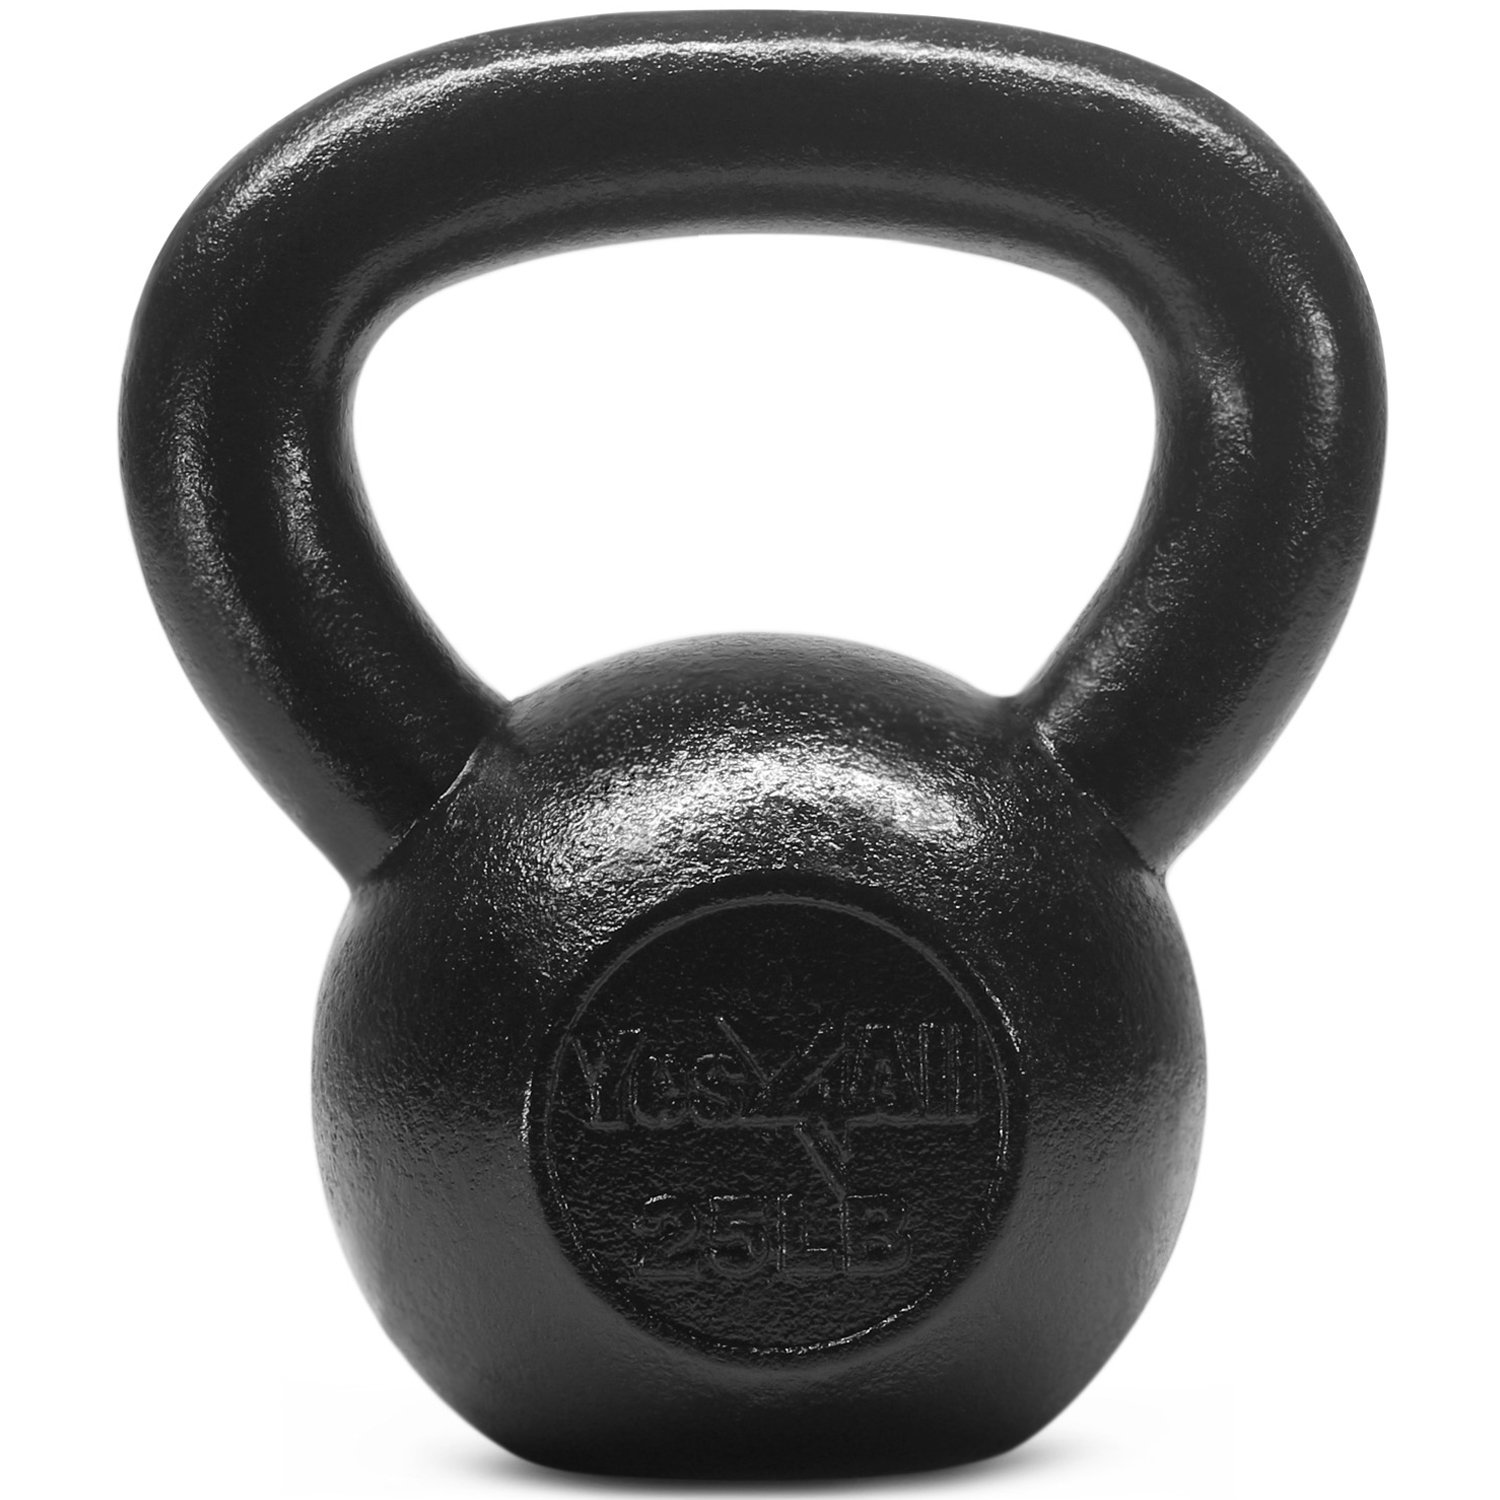 Yes4All Solid Cast Iron Kettlebell Weights Set – Great for Full Body Workout and Strength Training – Kettlebell 25 lbs (Black) by Yes4All (Image #1)